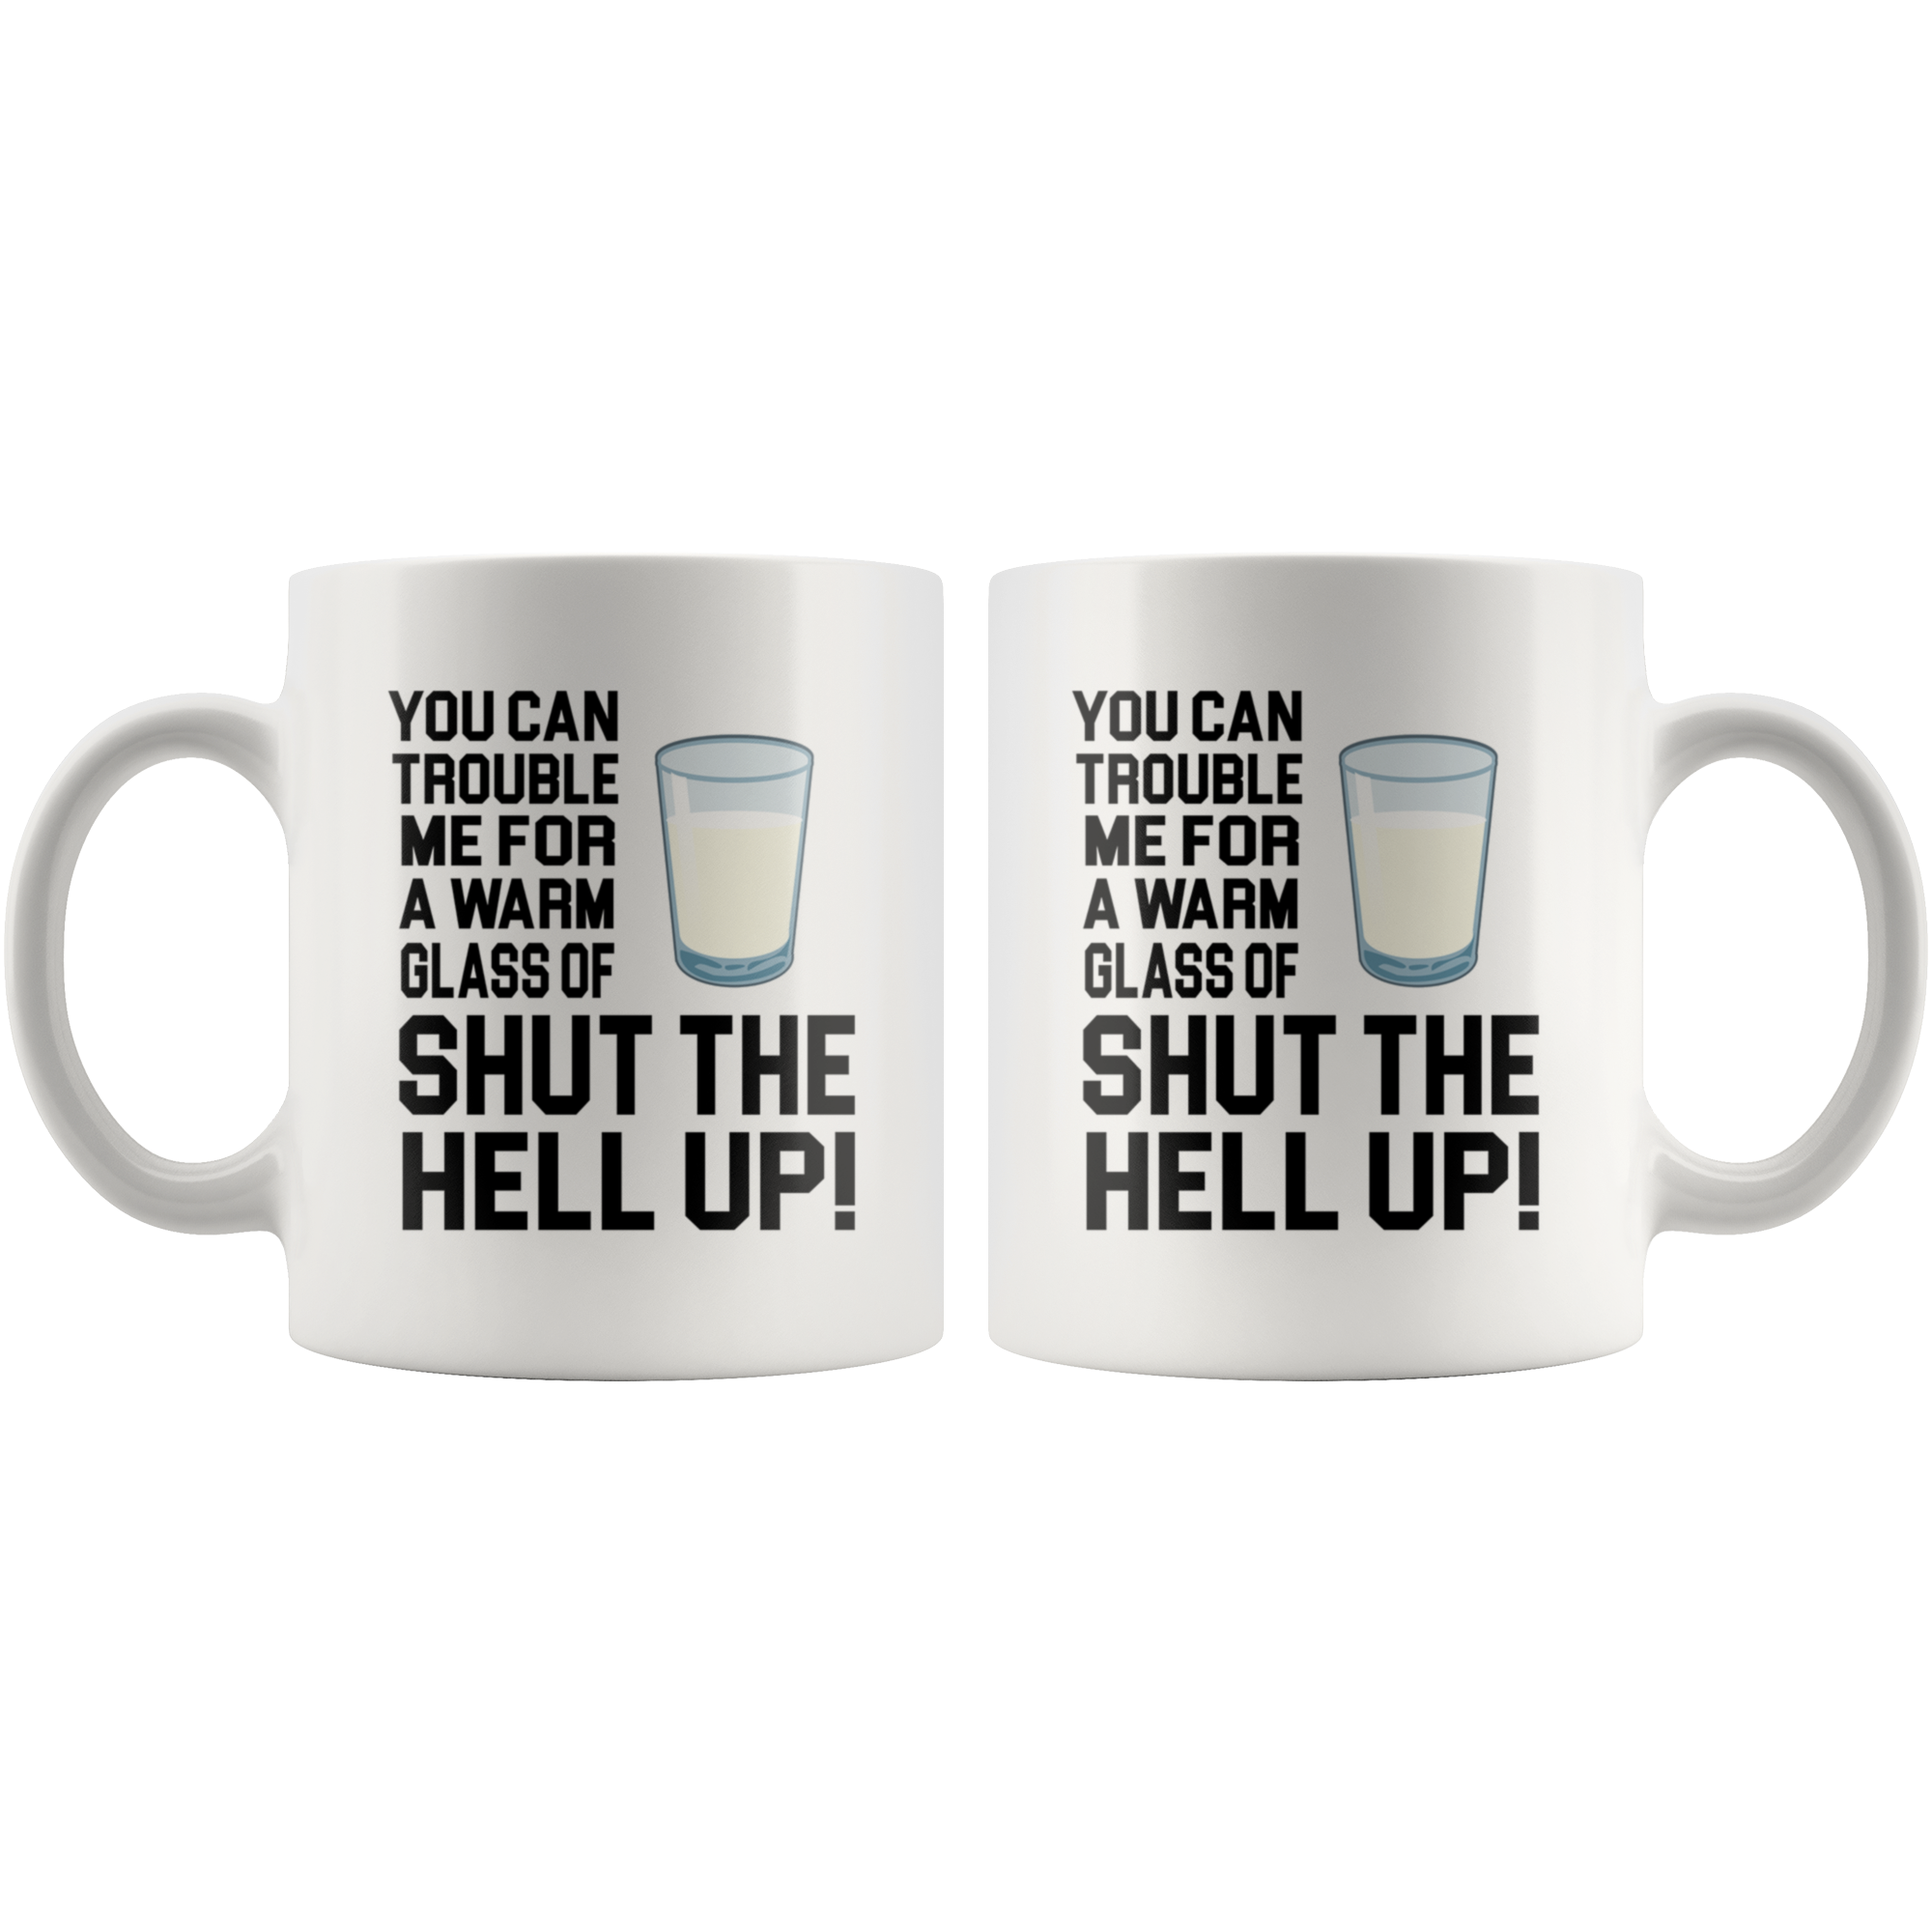 You Can Trouble Me For A Warm Glass Of Shut The Hell Up - 11 oz Ceramic Mug